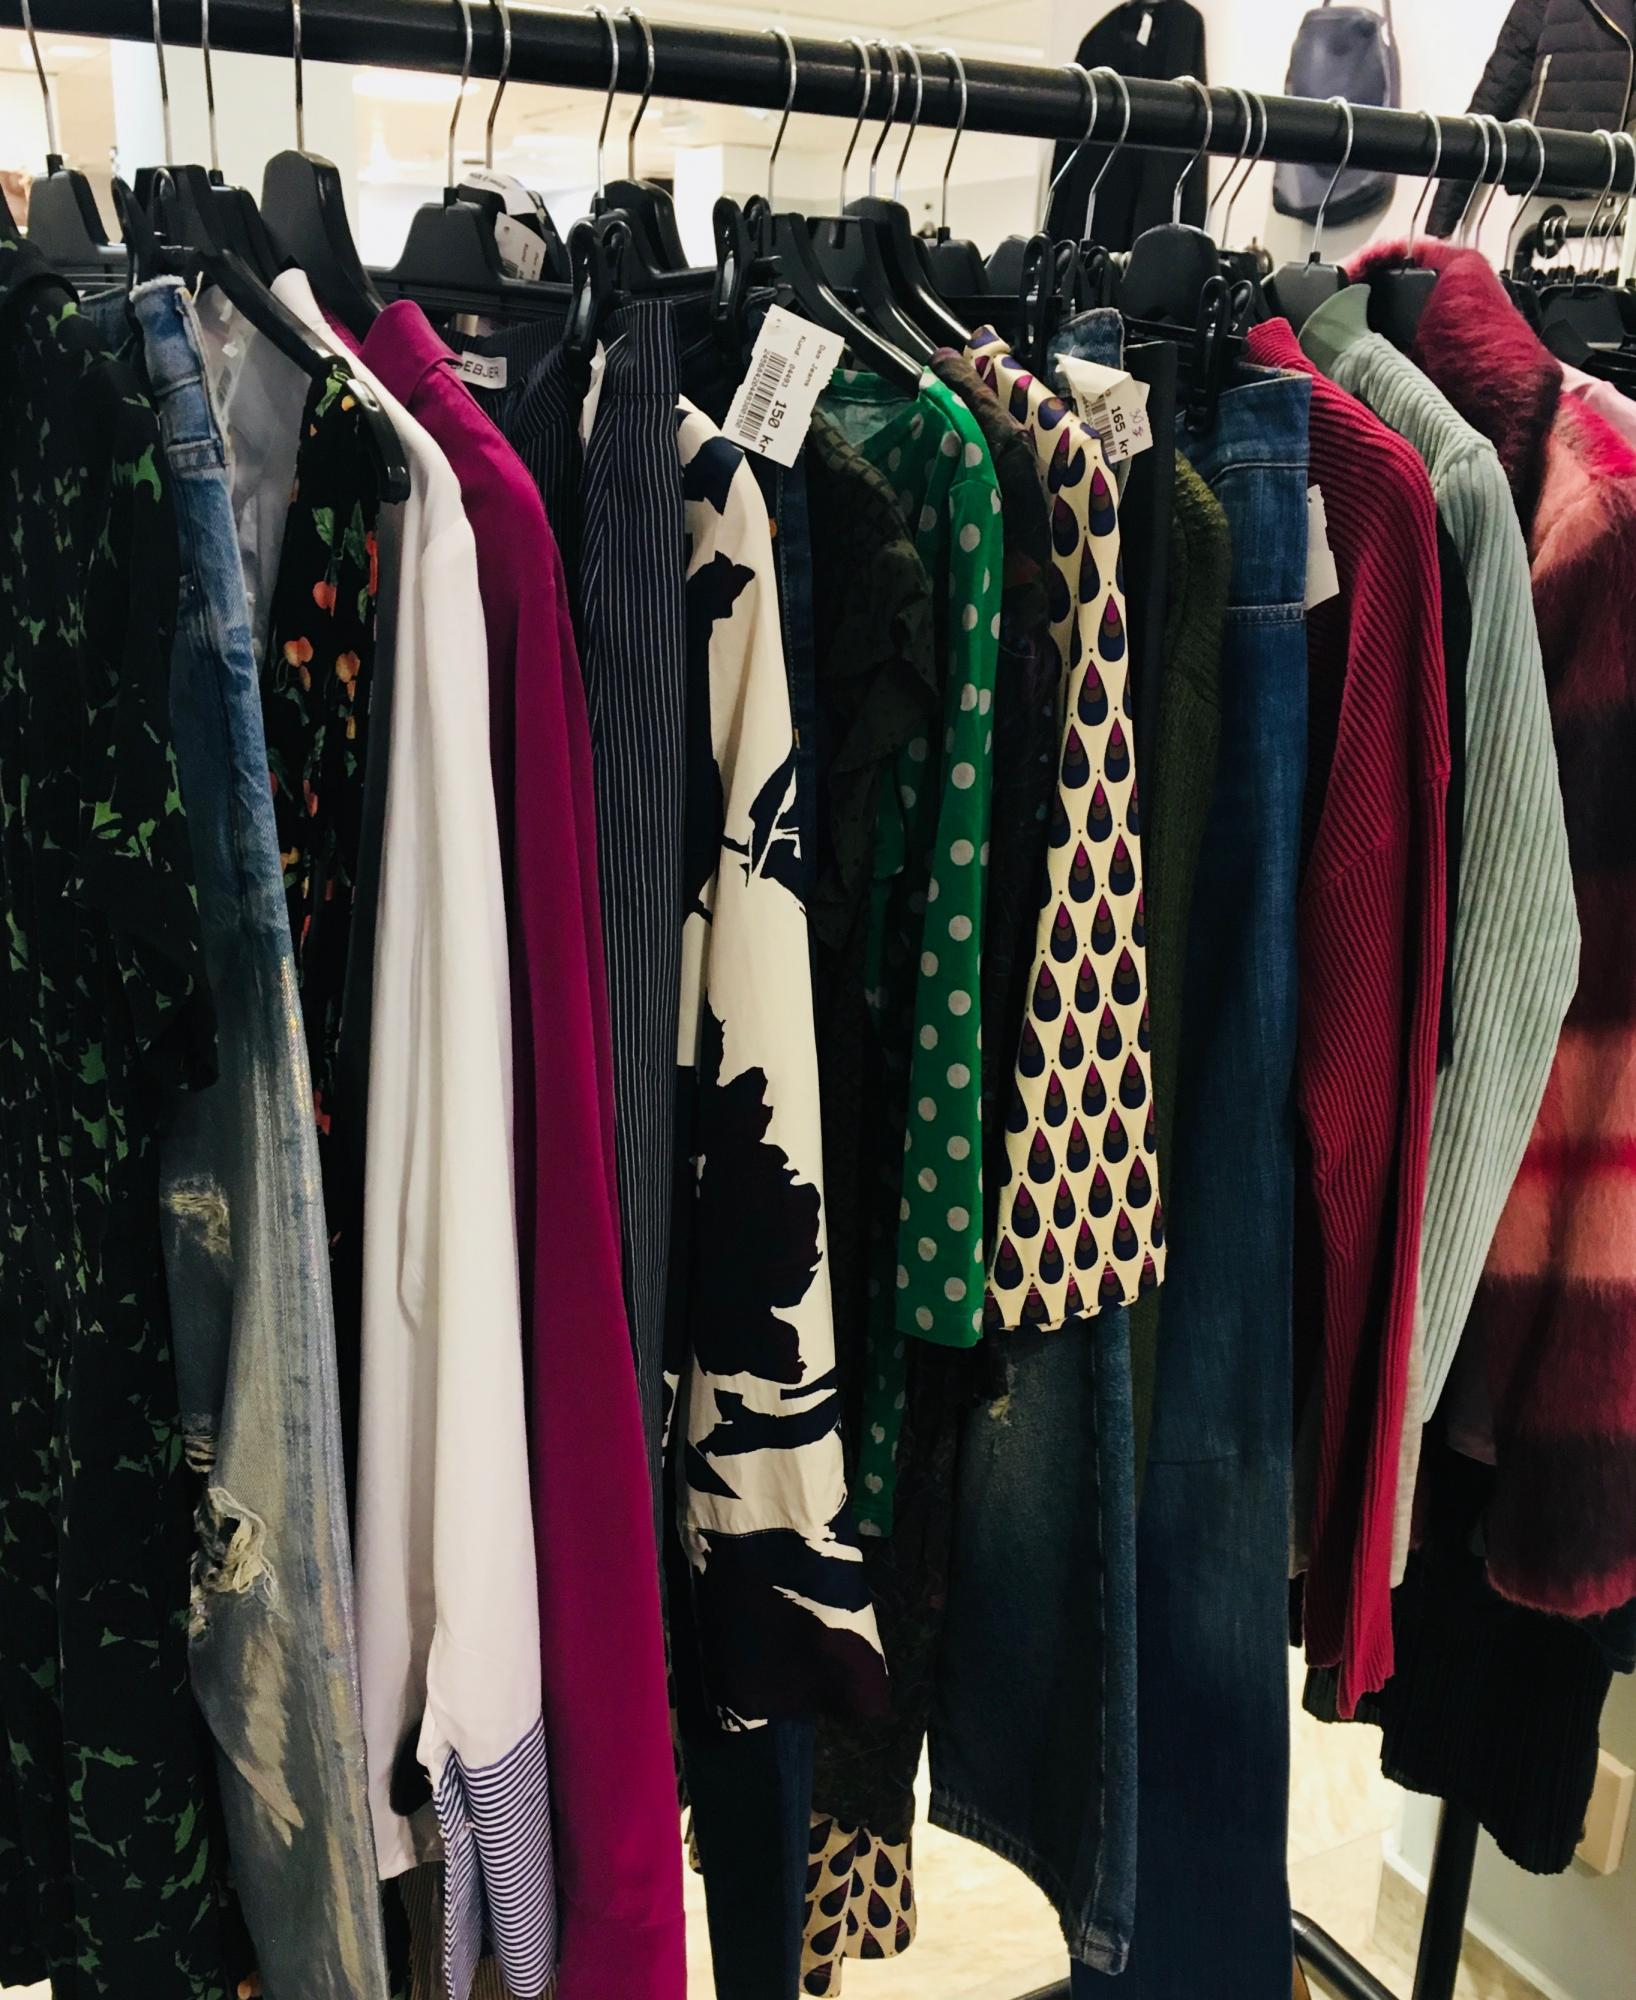 Stockholm's second-hand clothes shops: treasure hunting for grown-ups